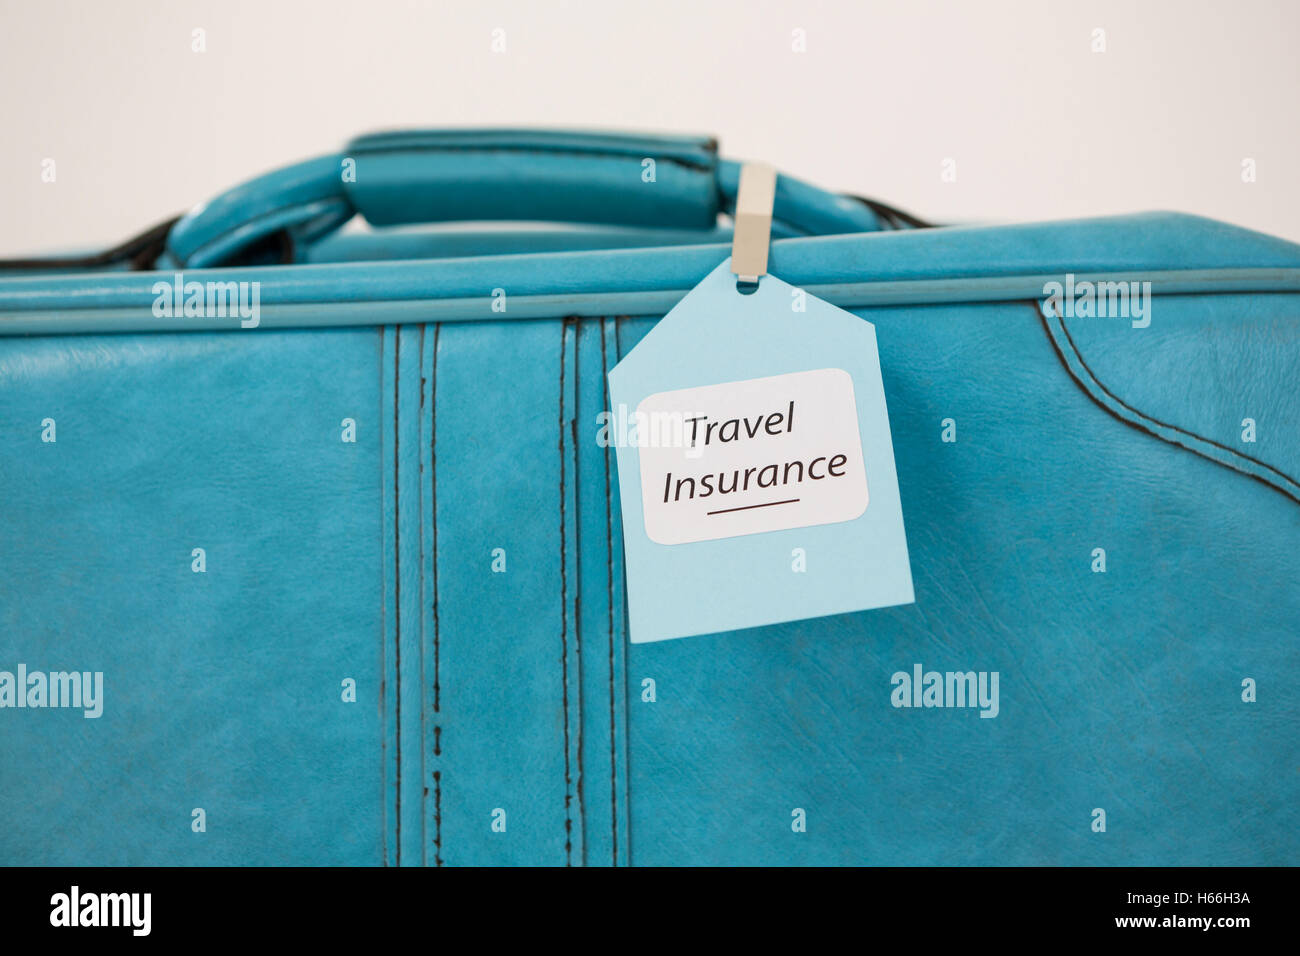 Travel insurance label tied to a suitcase - Stock Image